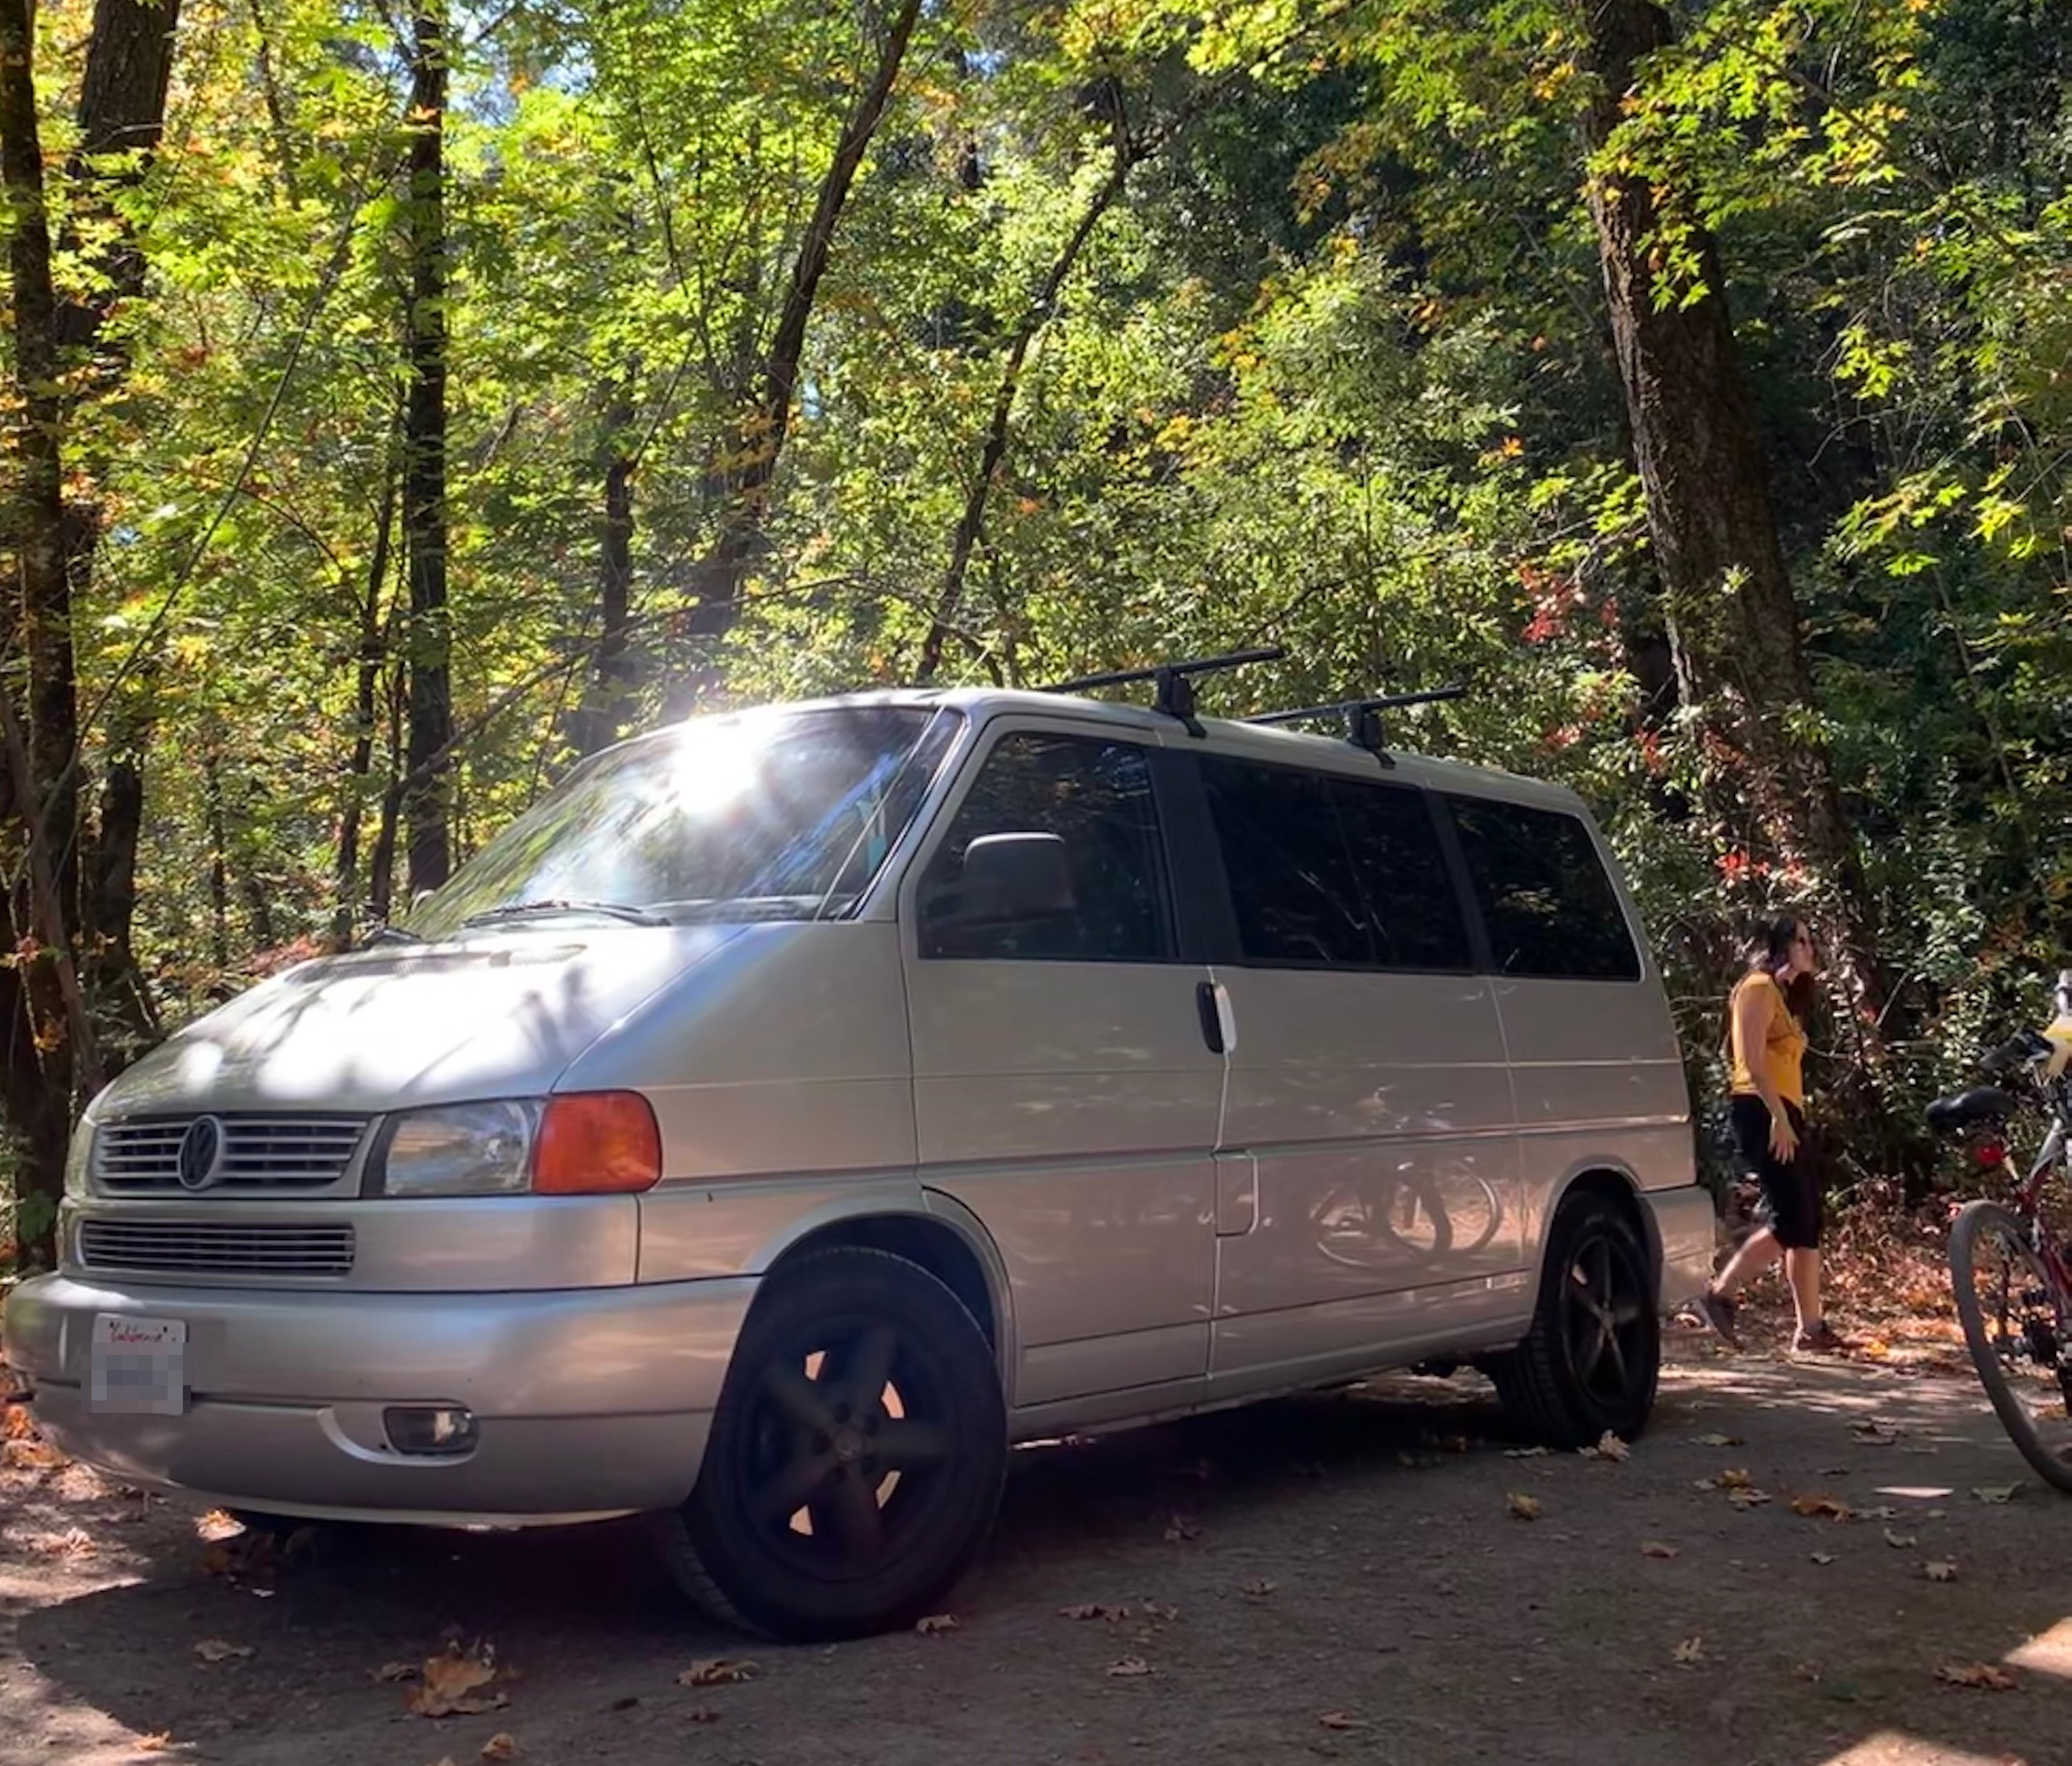 Van in campsite underneath soaring trees